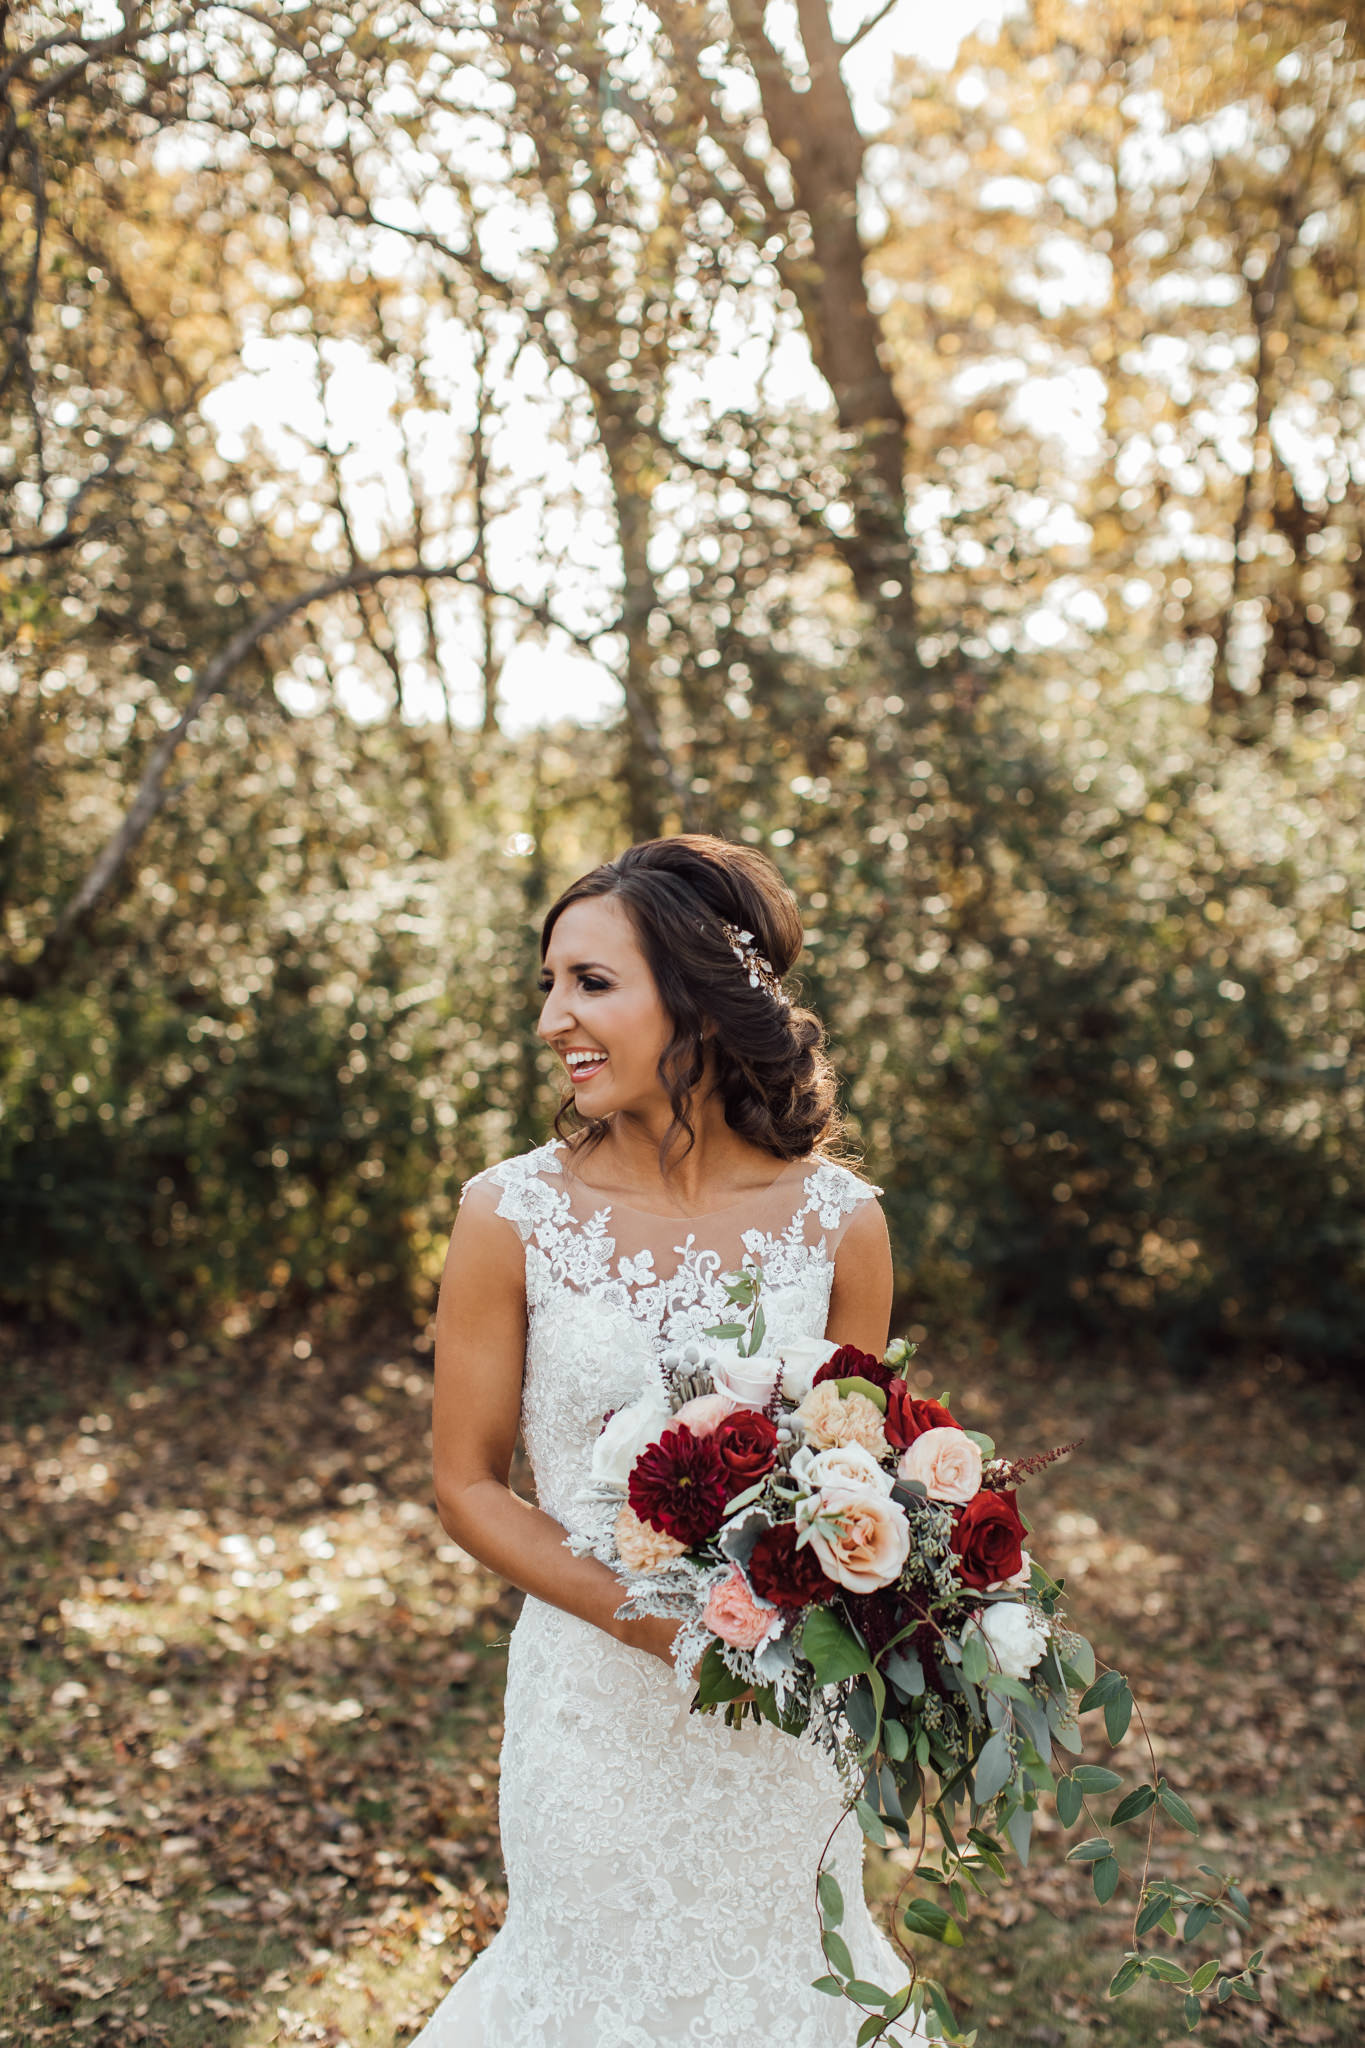 chattannooga-wedding-photographer-waterhouse-pavillion-cassie-cook-photography-7.jpg